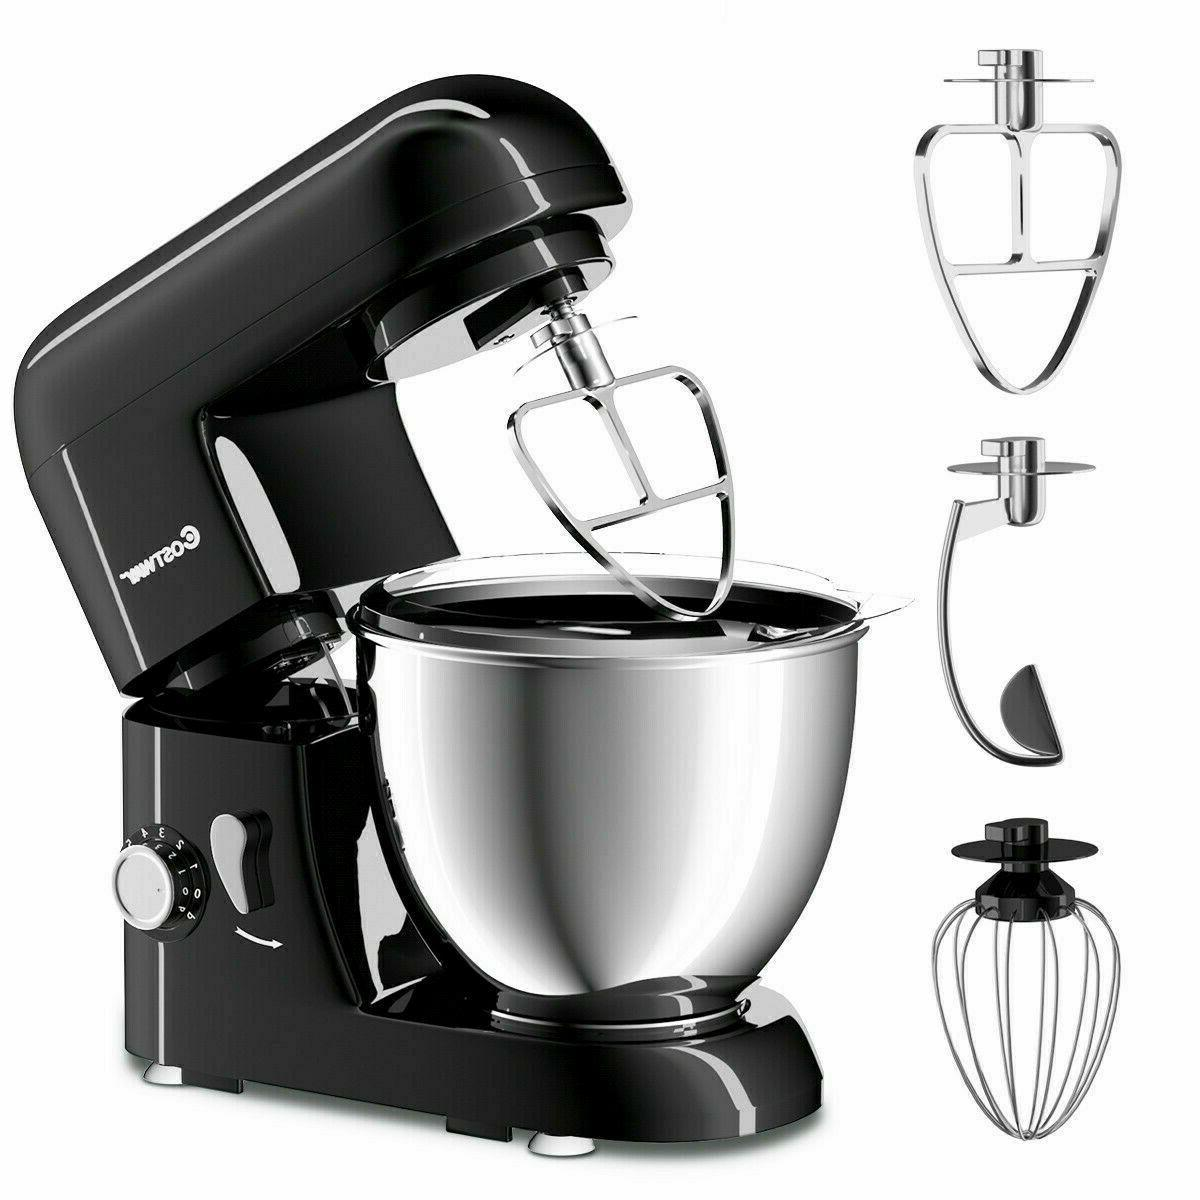 largeelectric food stand mixer 6 speed 4